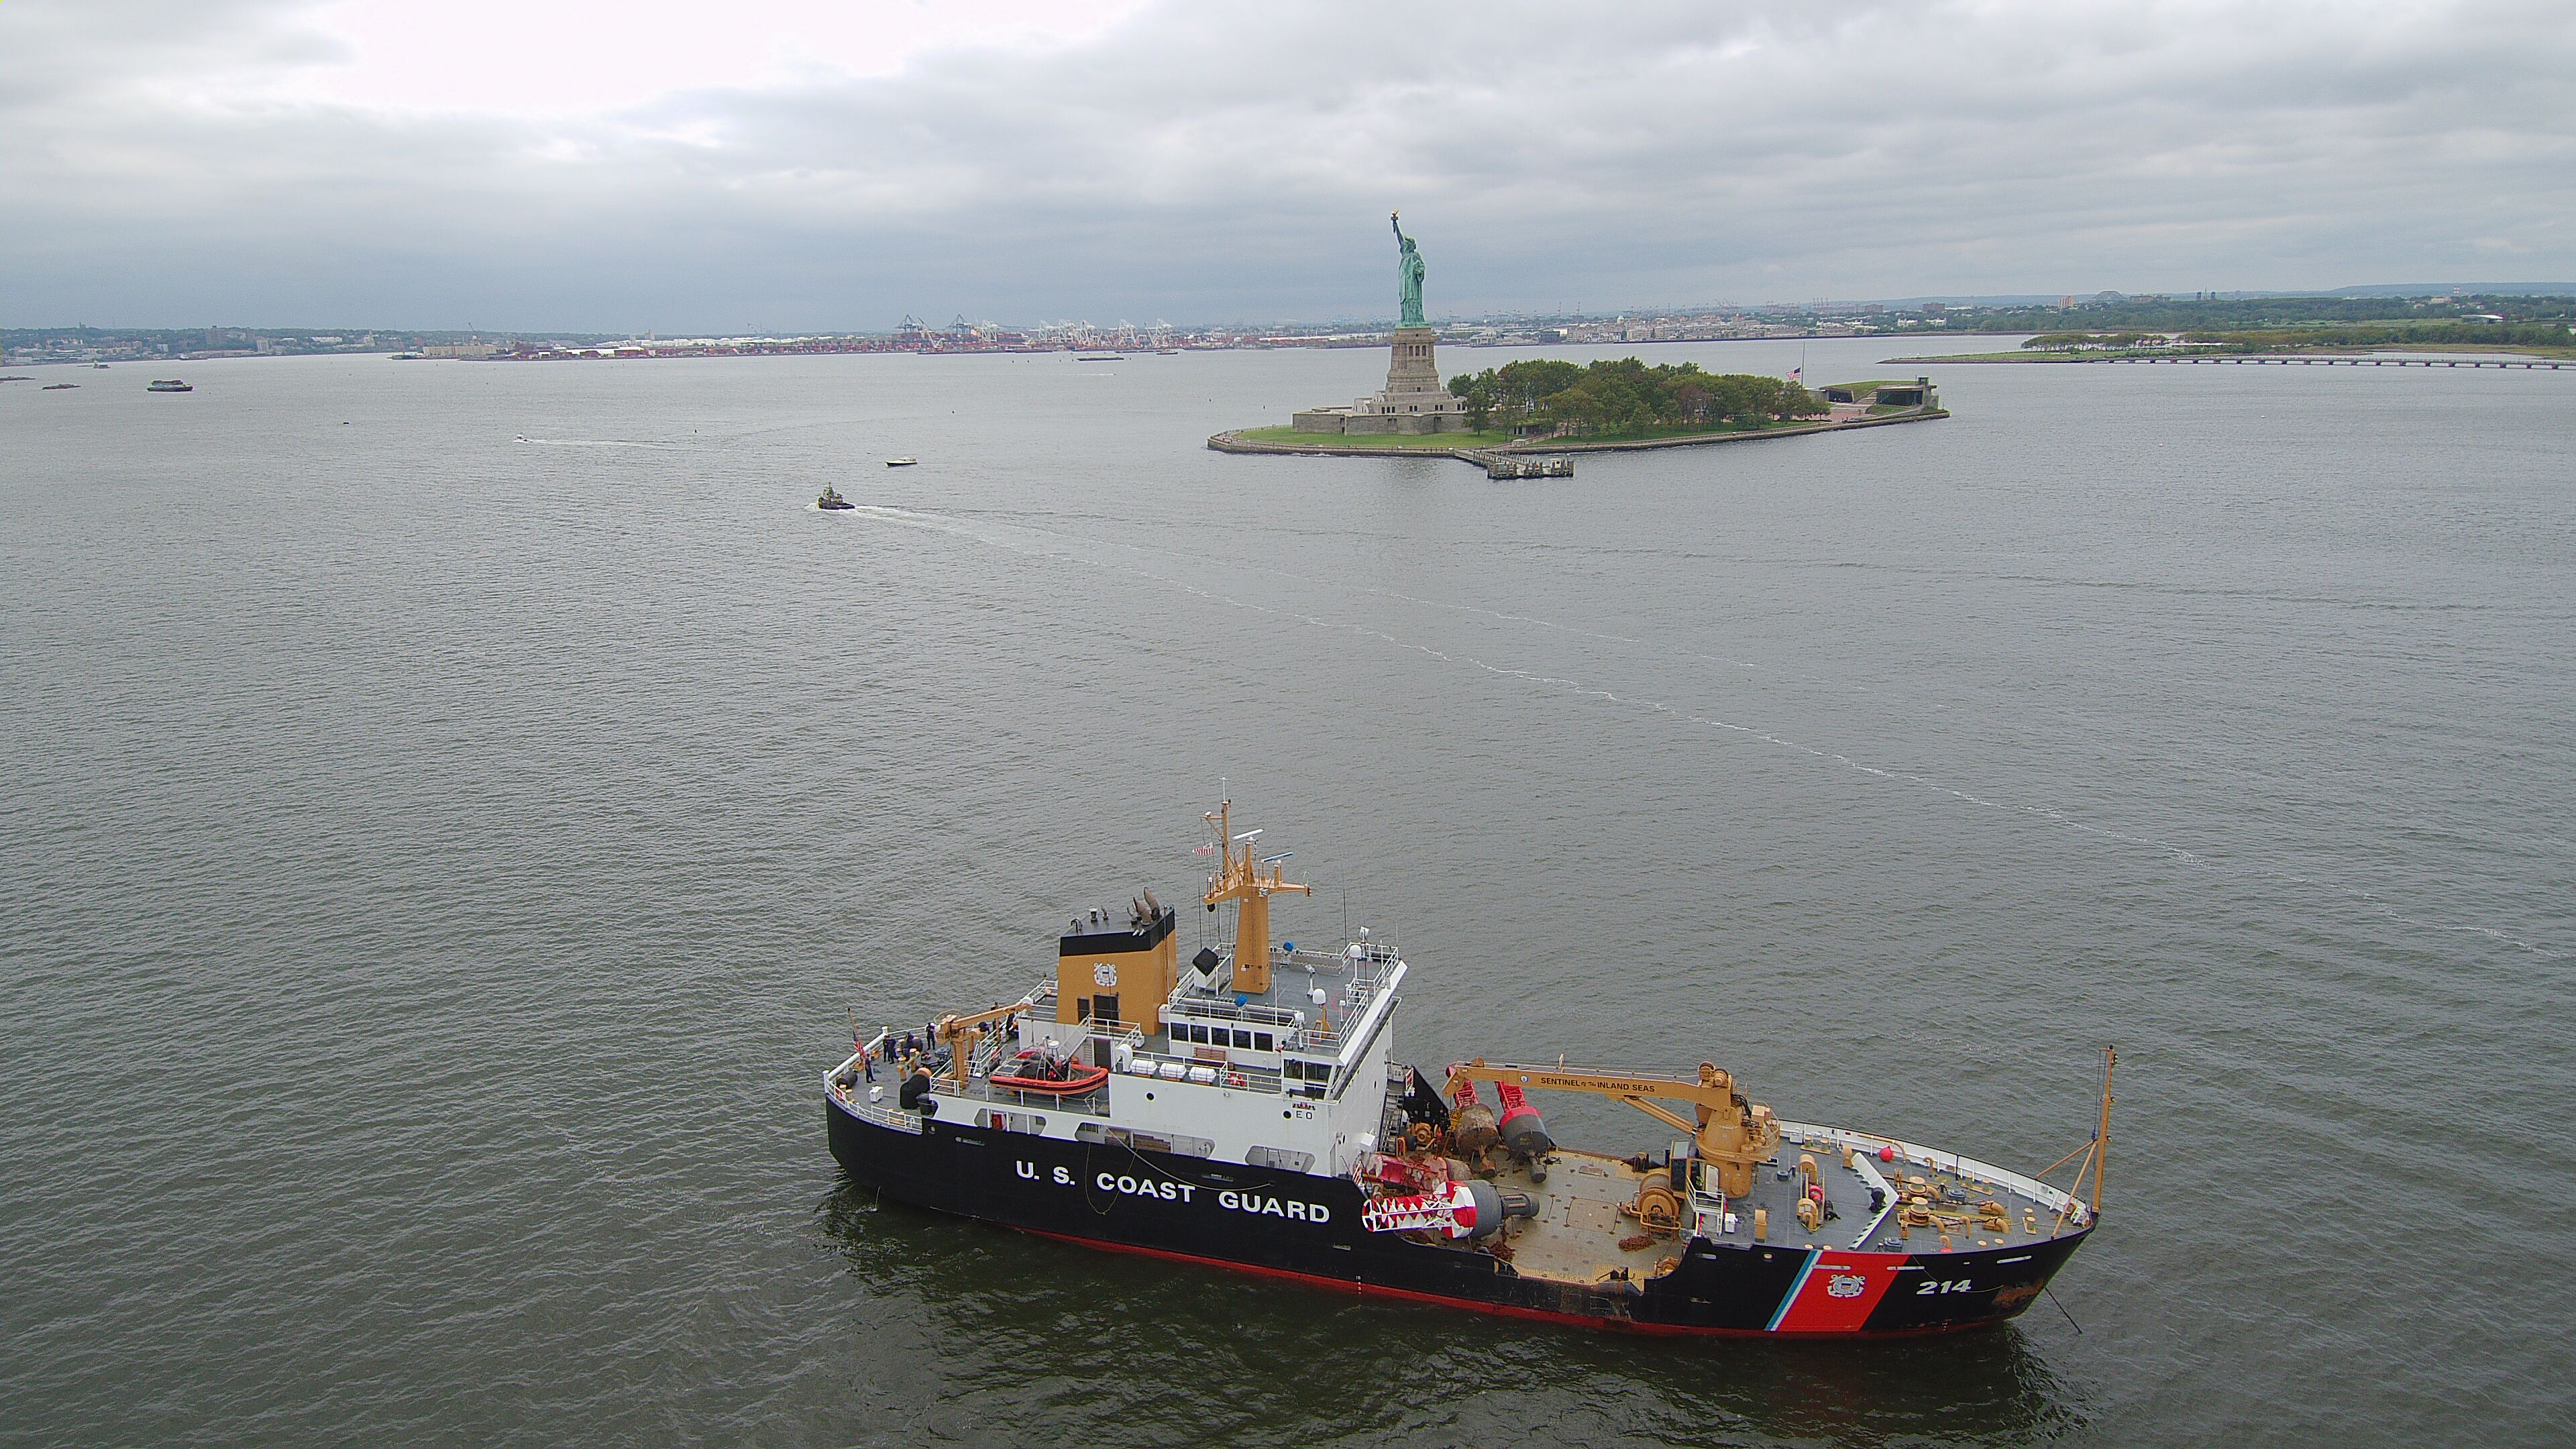 Anchored off the Statue of Liberty in New York, New York, the USCGC Hollyhock assists with the Sept. 11 memorial event on Friday, Sept. 11, 2020.